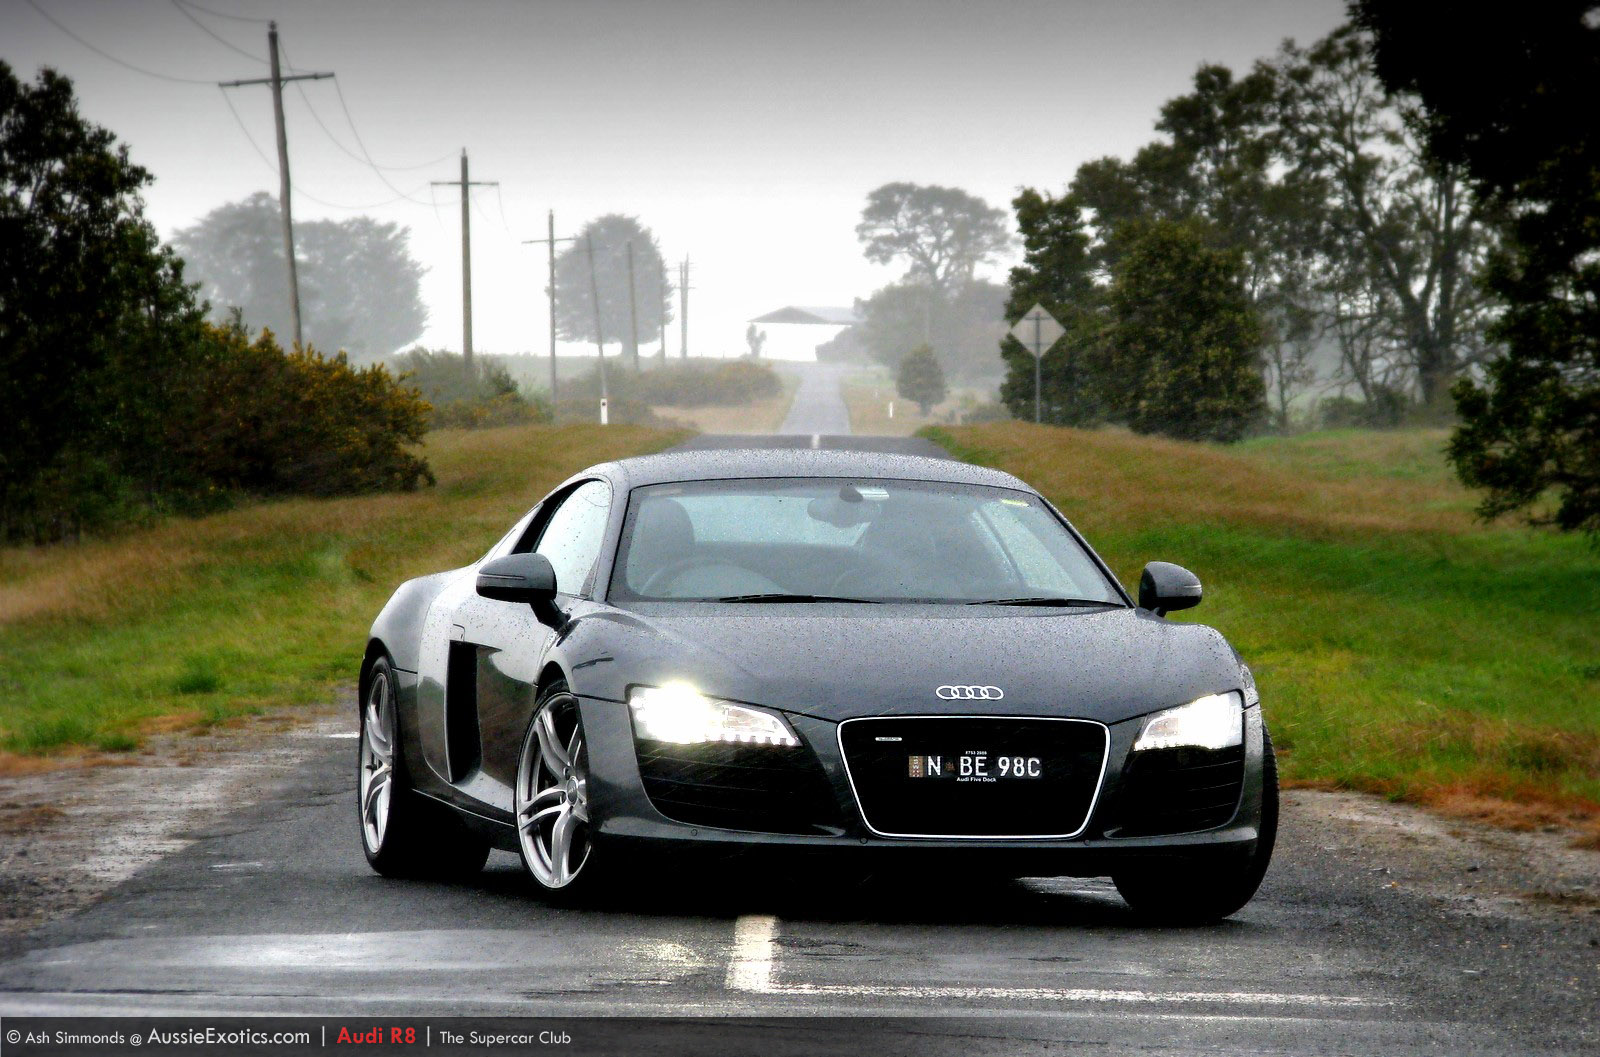 Audi R8 ashsimmonds Audi R8